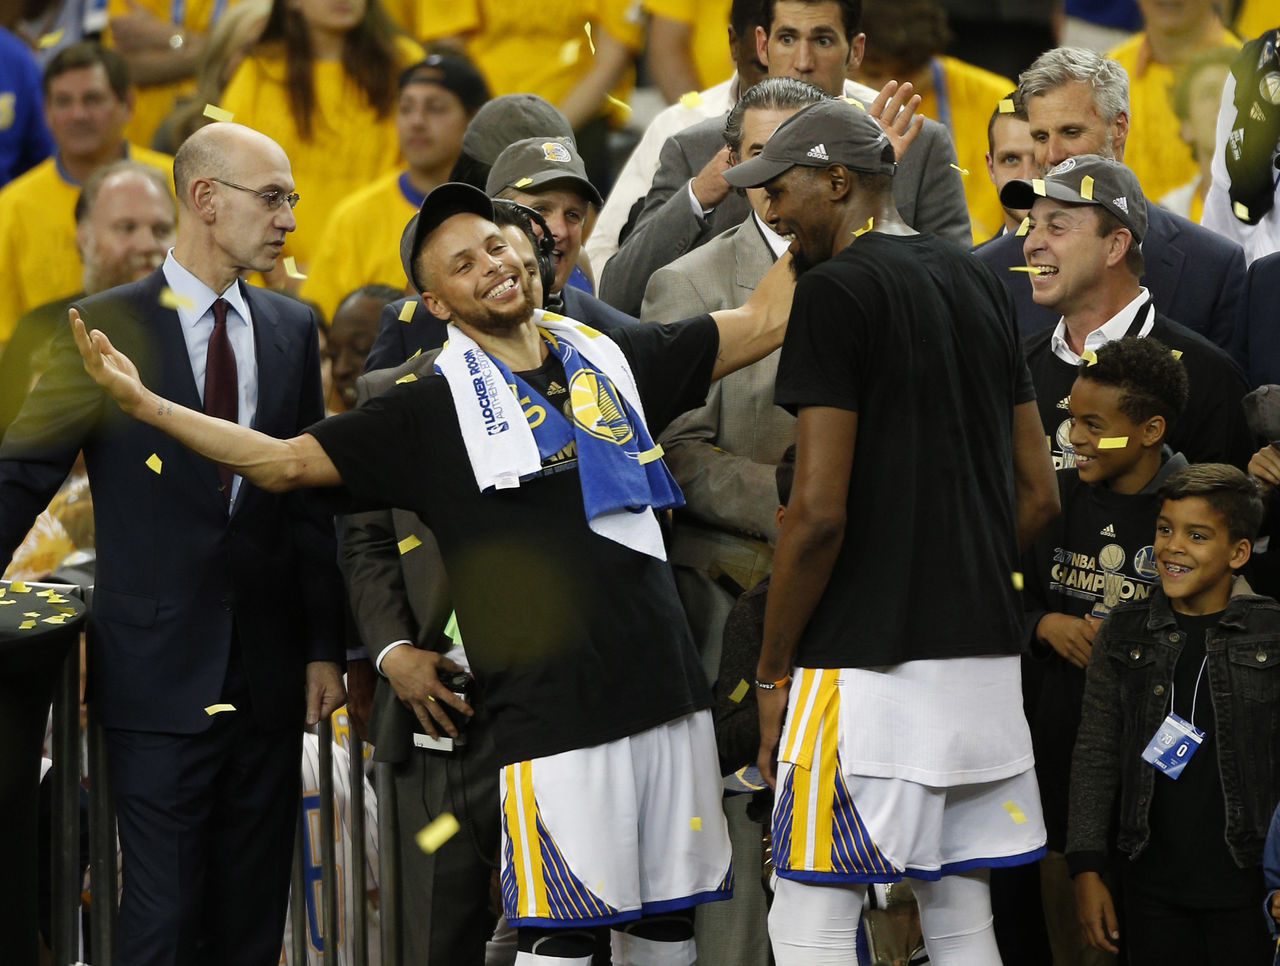 Cropped 2017 06 13t044642z 2029305899 nocid rtrmadp 3 nba finals cleveland cavaliers at golden state warriors